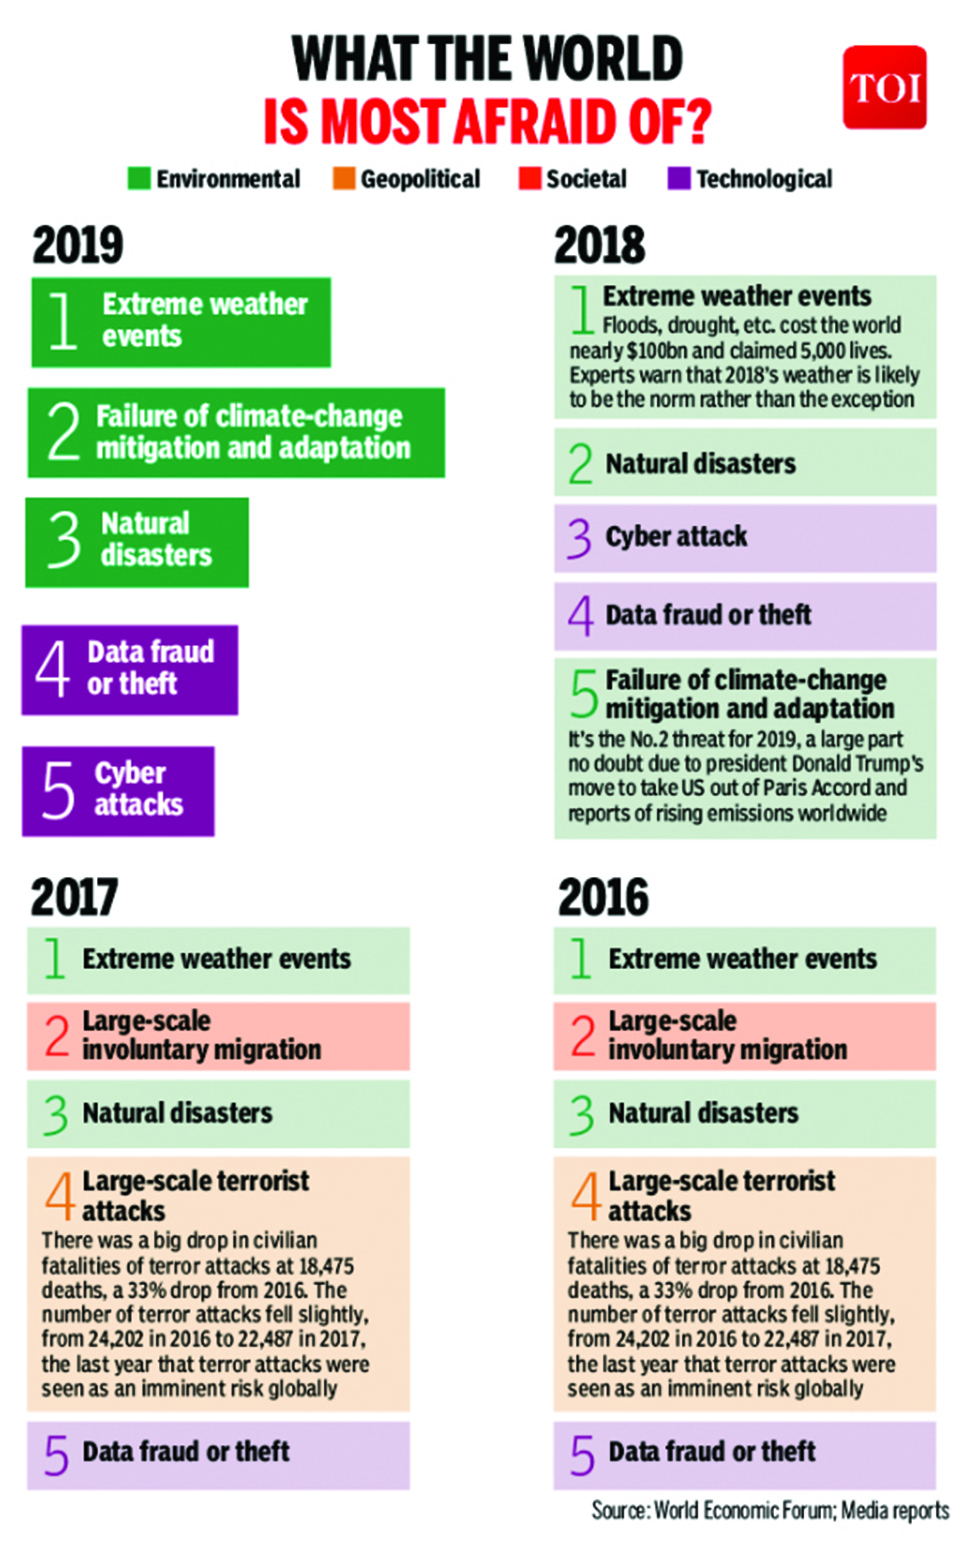 Infographics: Extreme weather is the biggest fear around the world